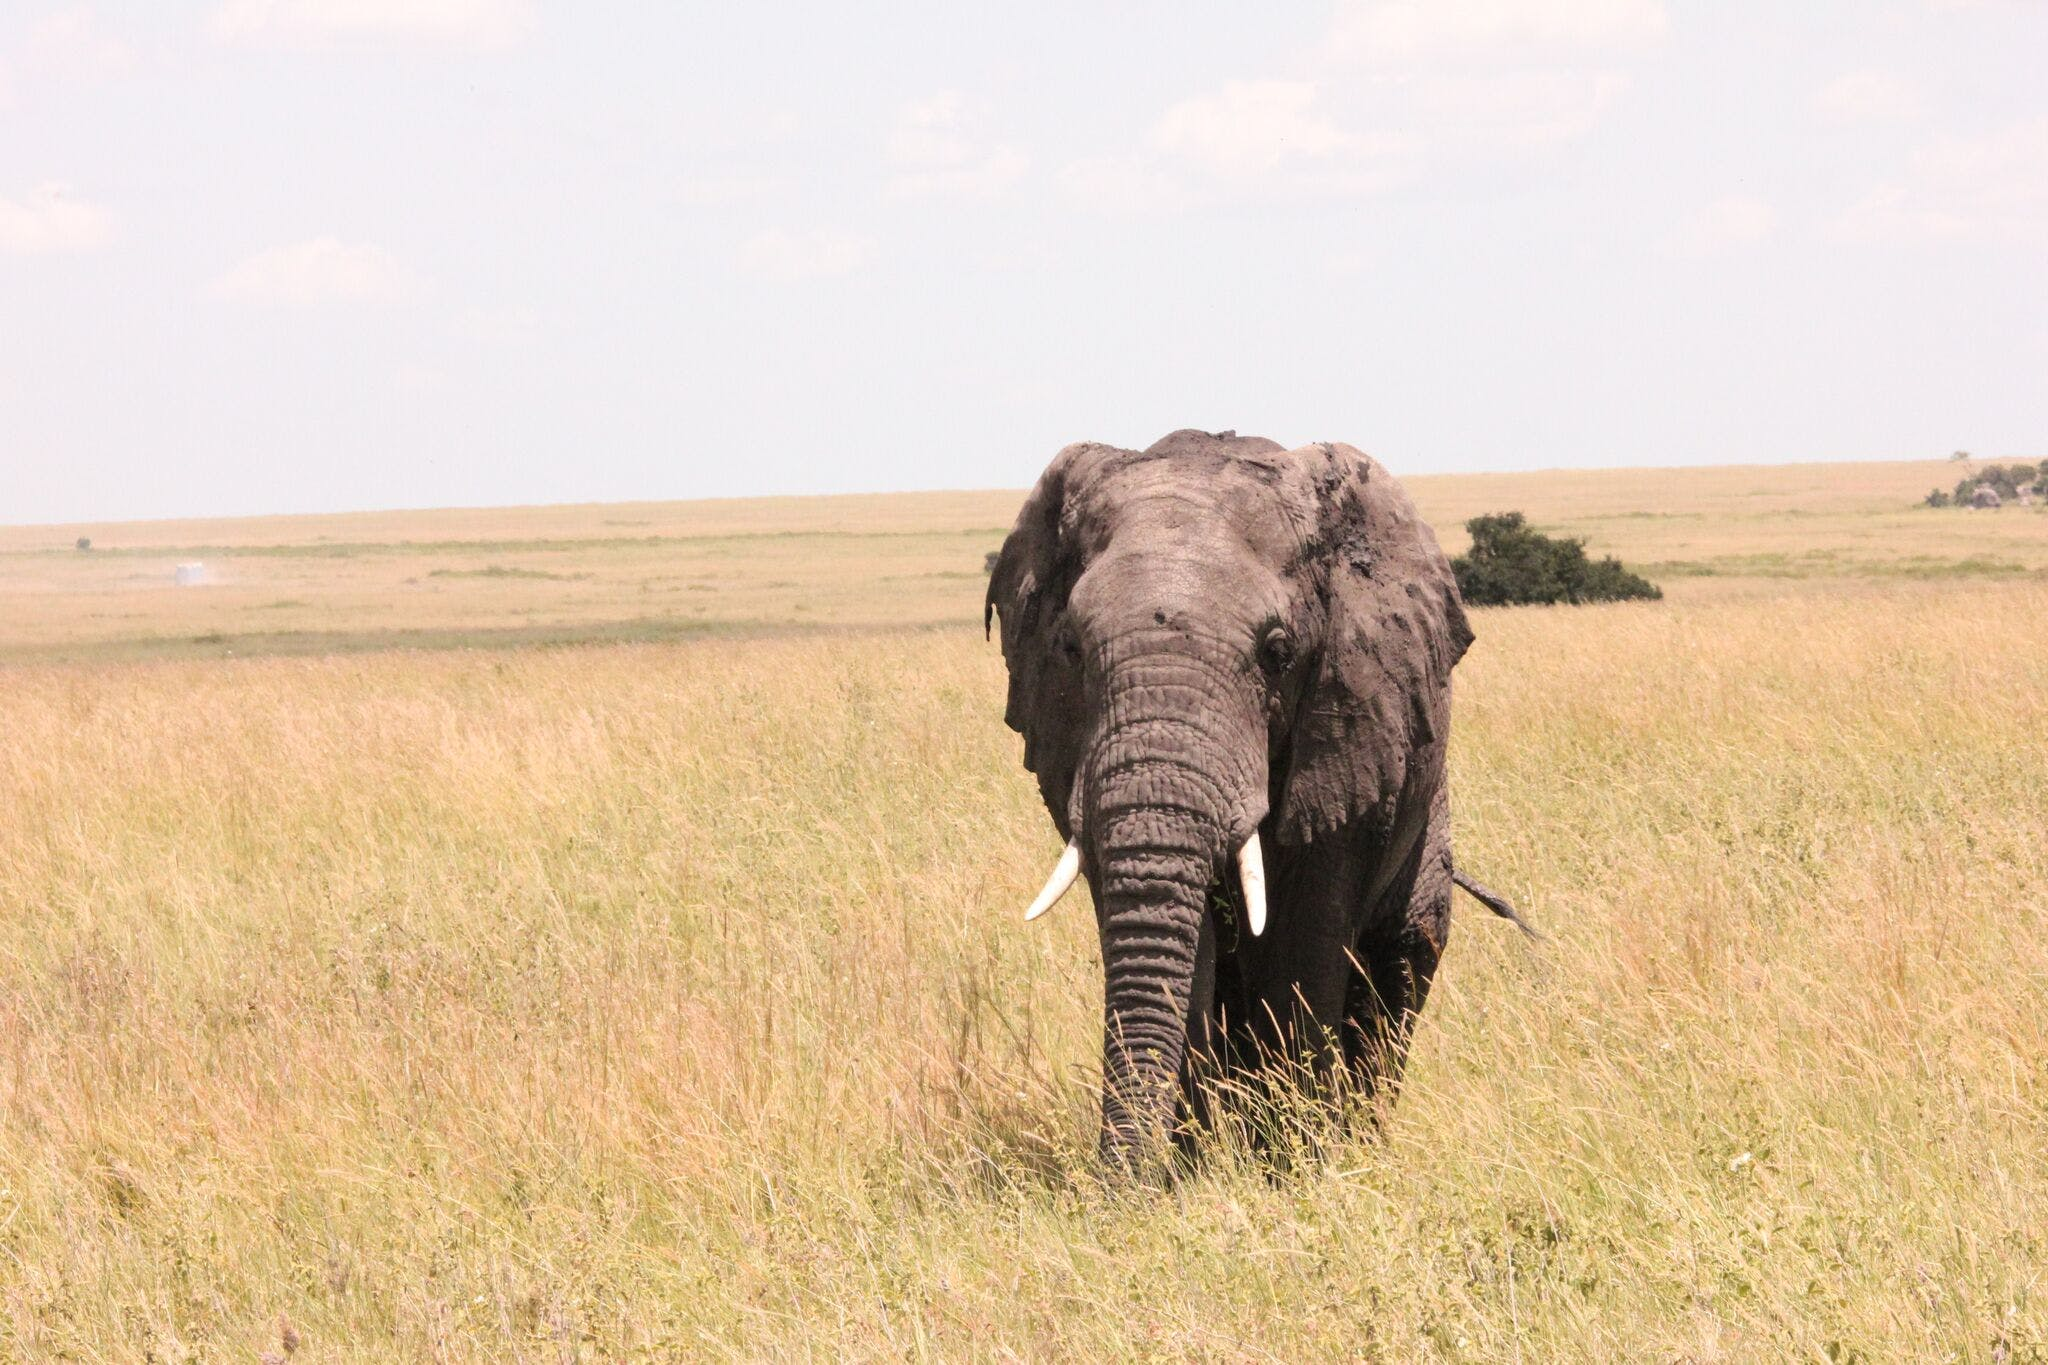 Elephant on Brown Grass Field